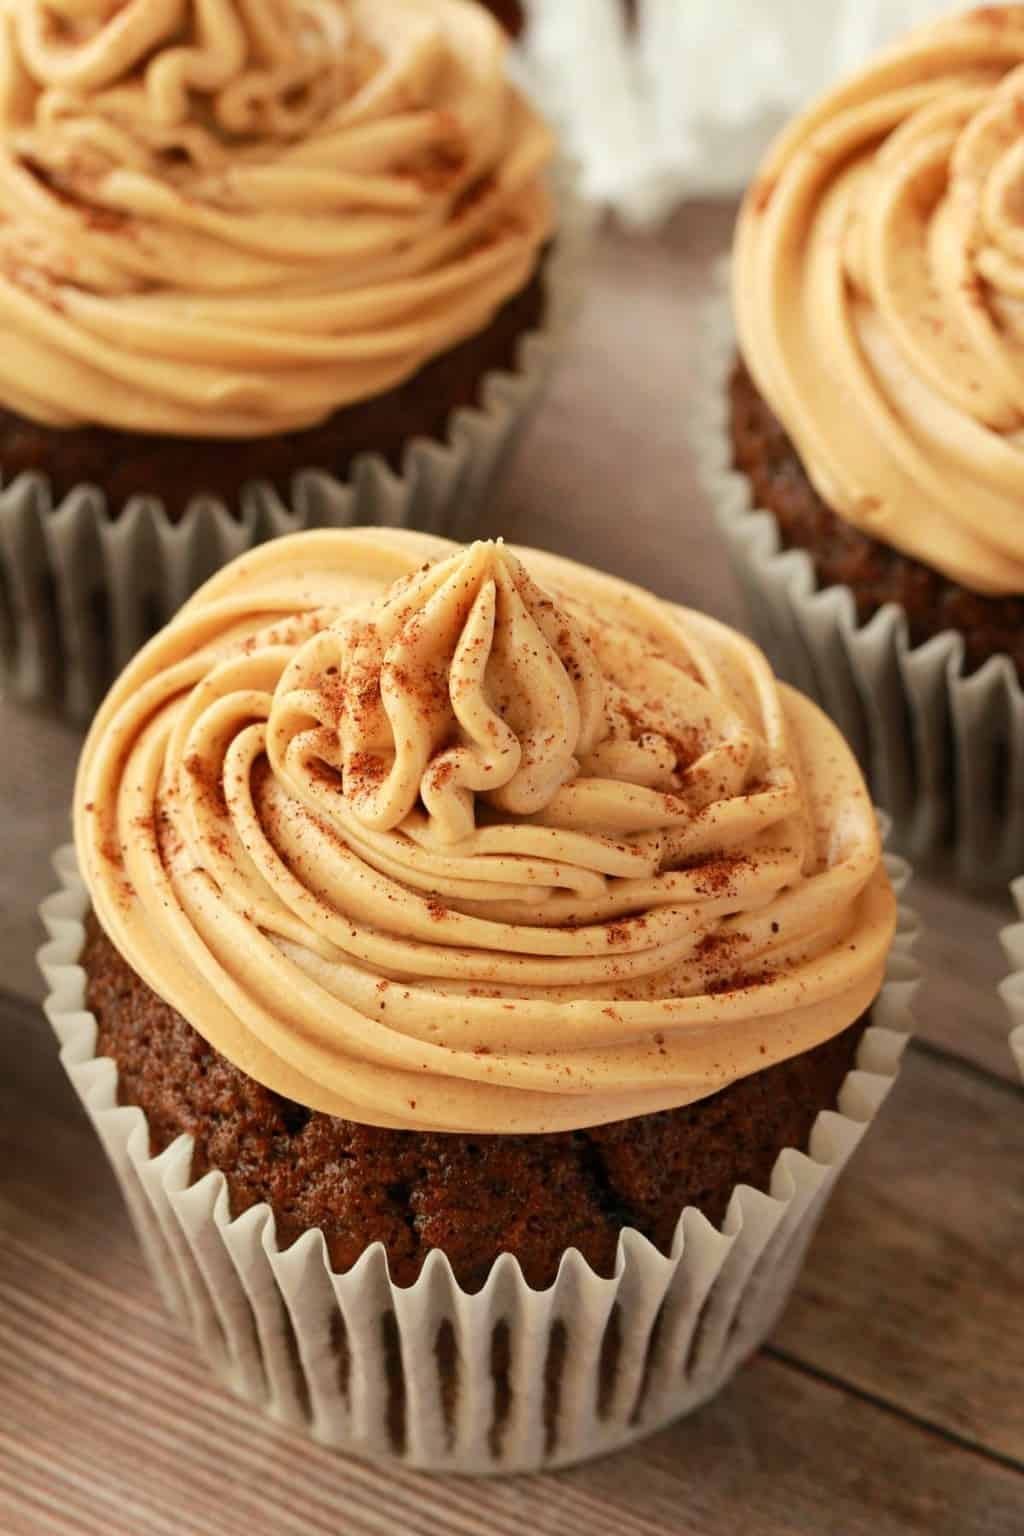 Vegan Coffee Cupcakes with Coffee Buttercream Frosting. Deliciously rich and moist! #vegan #lovingitvegan #coffeecupcakes #dessert